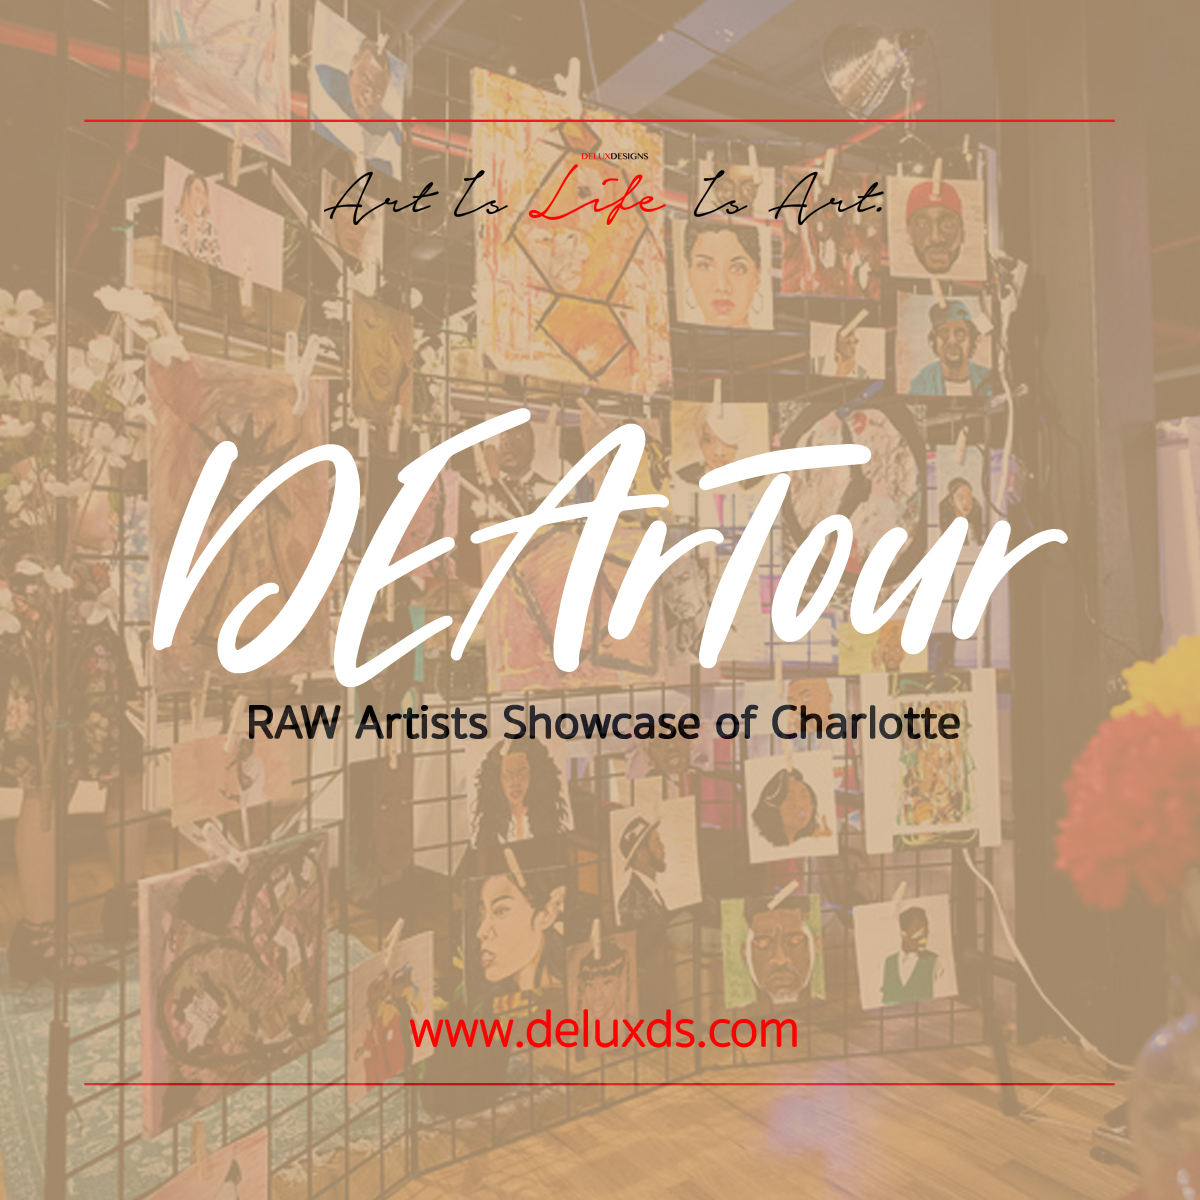 DEArTour - RAW Artist Showcase Charlotte